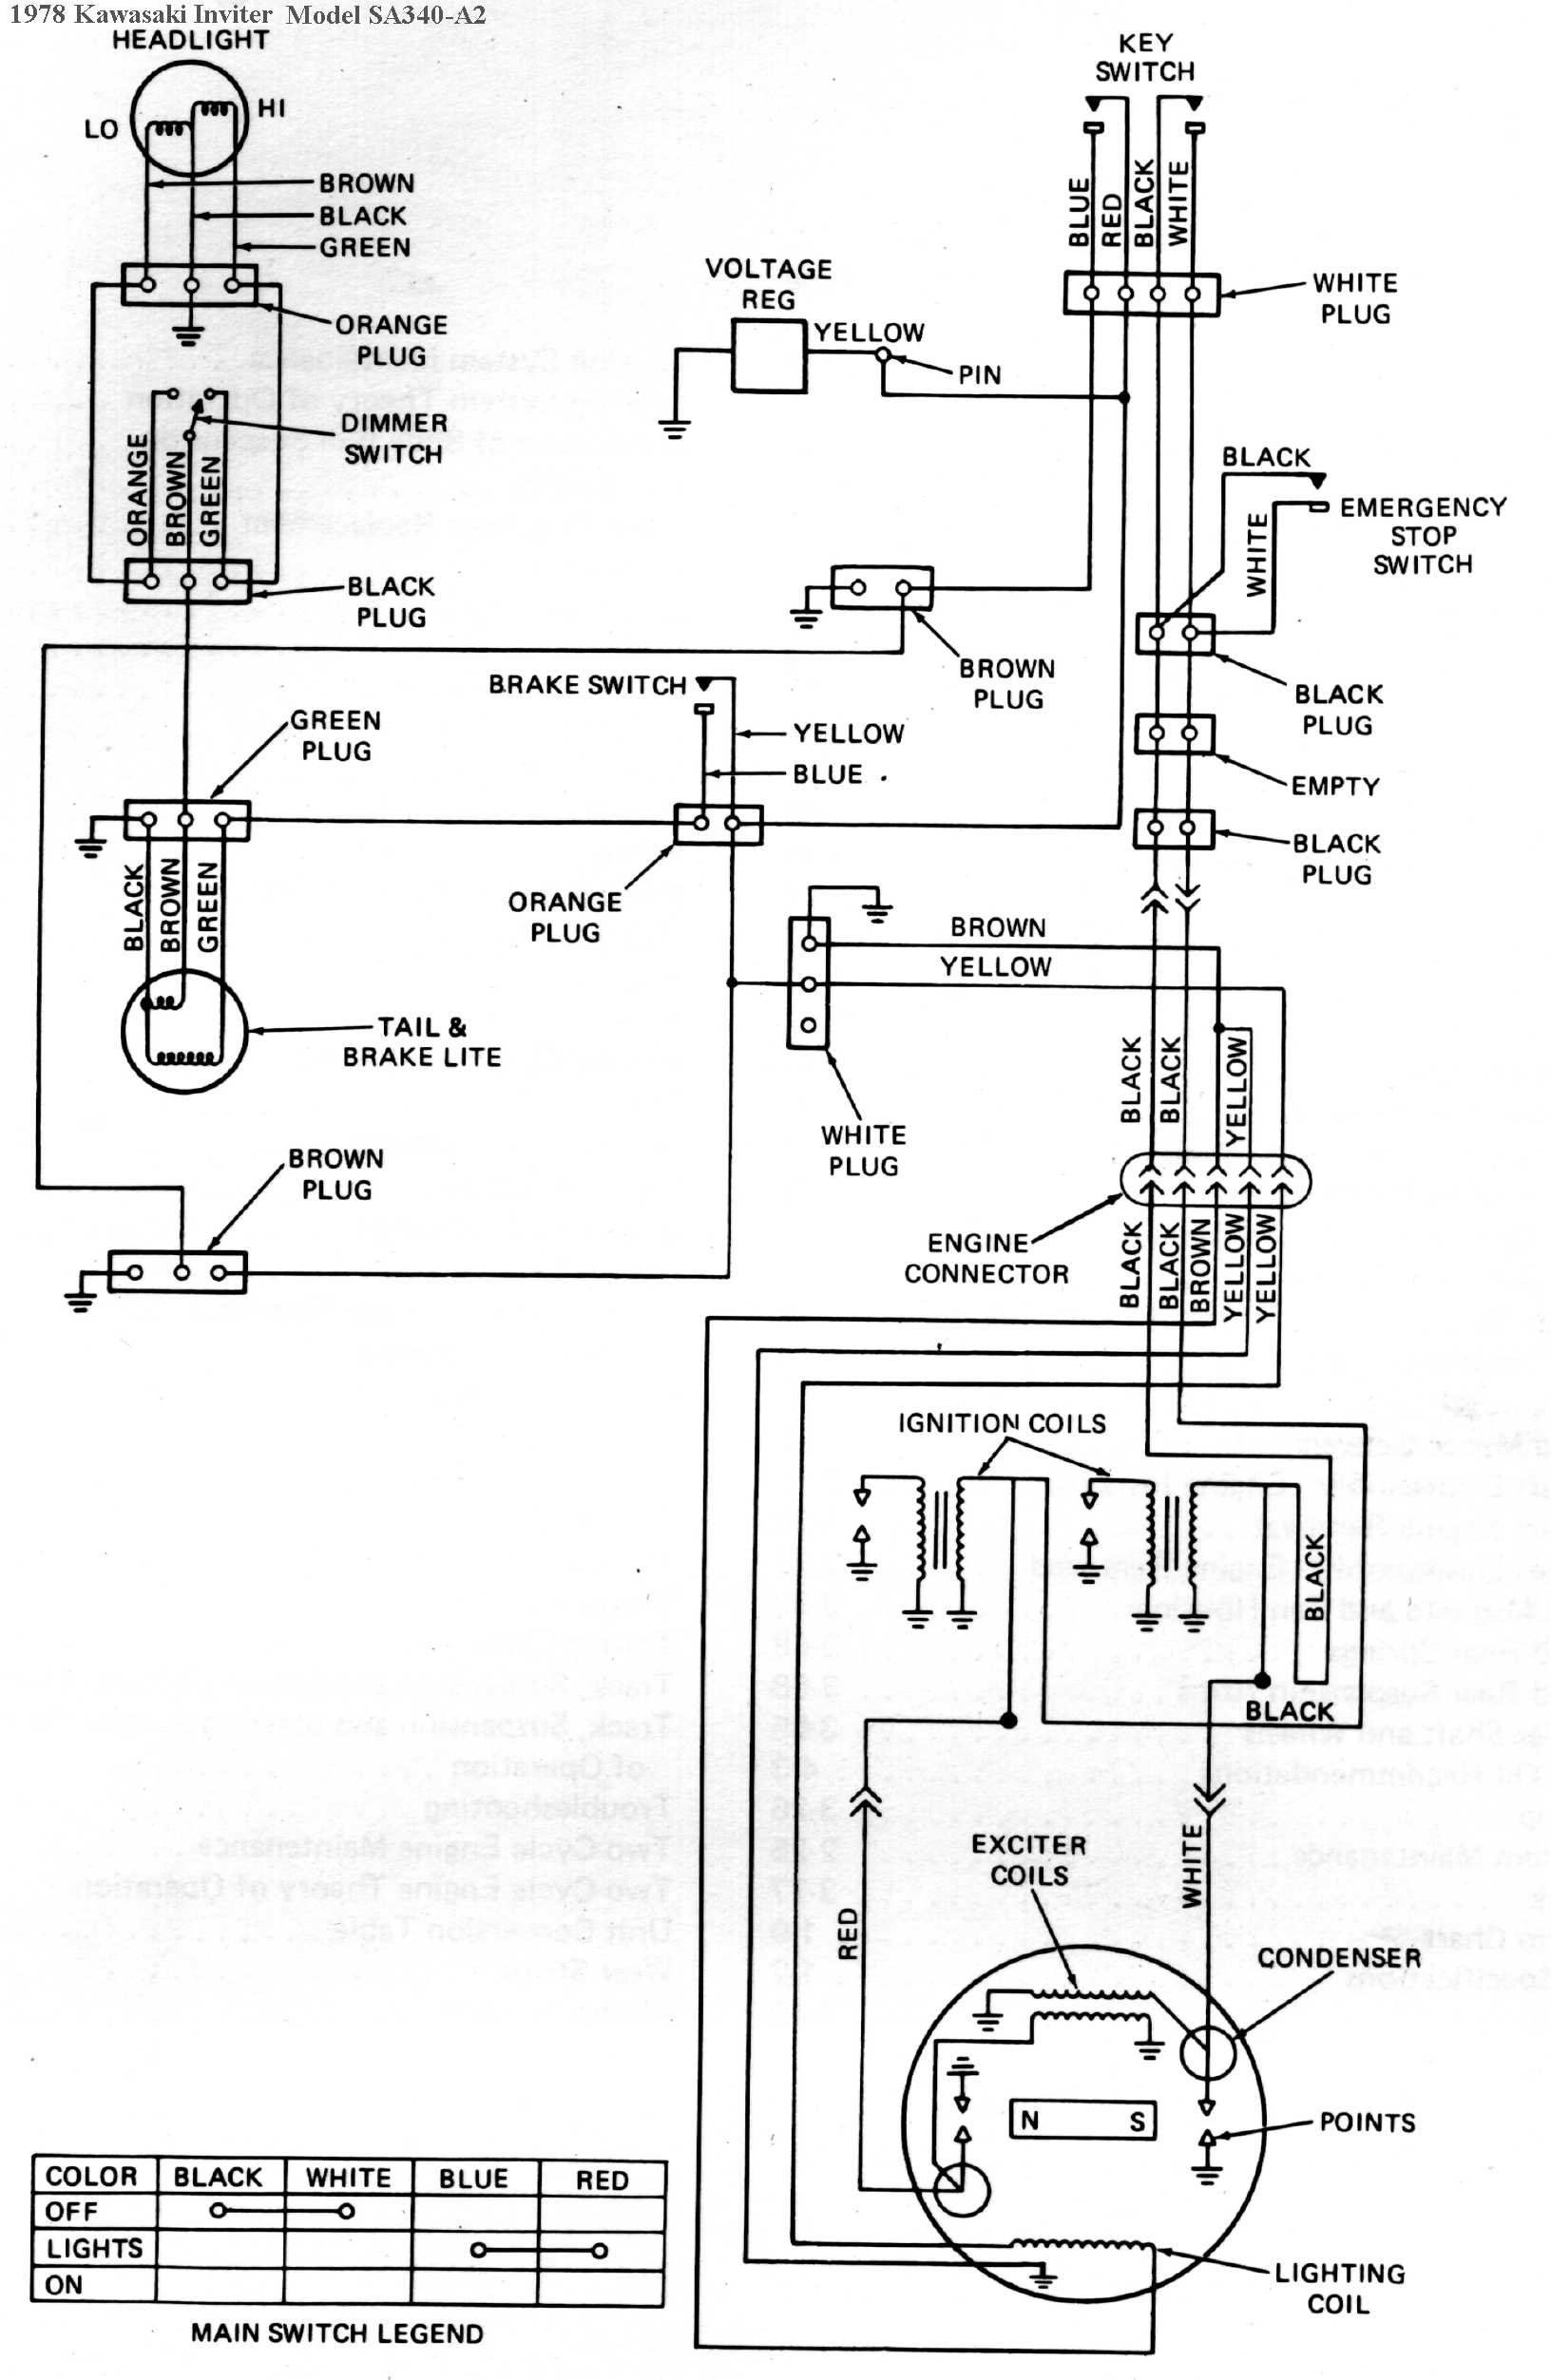 Diagram In Pictures Database Ls1 Wiring Diagram For